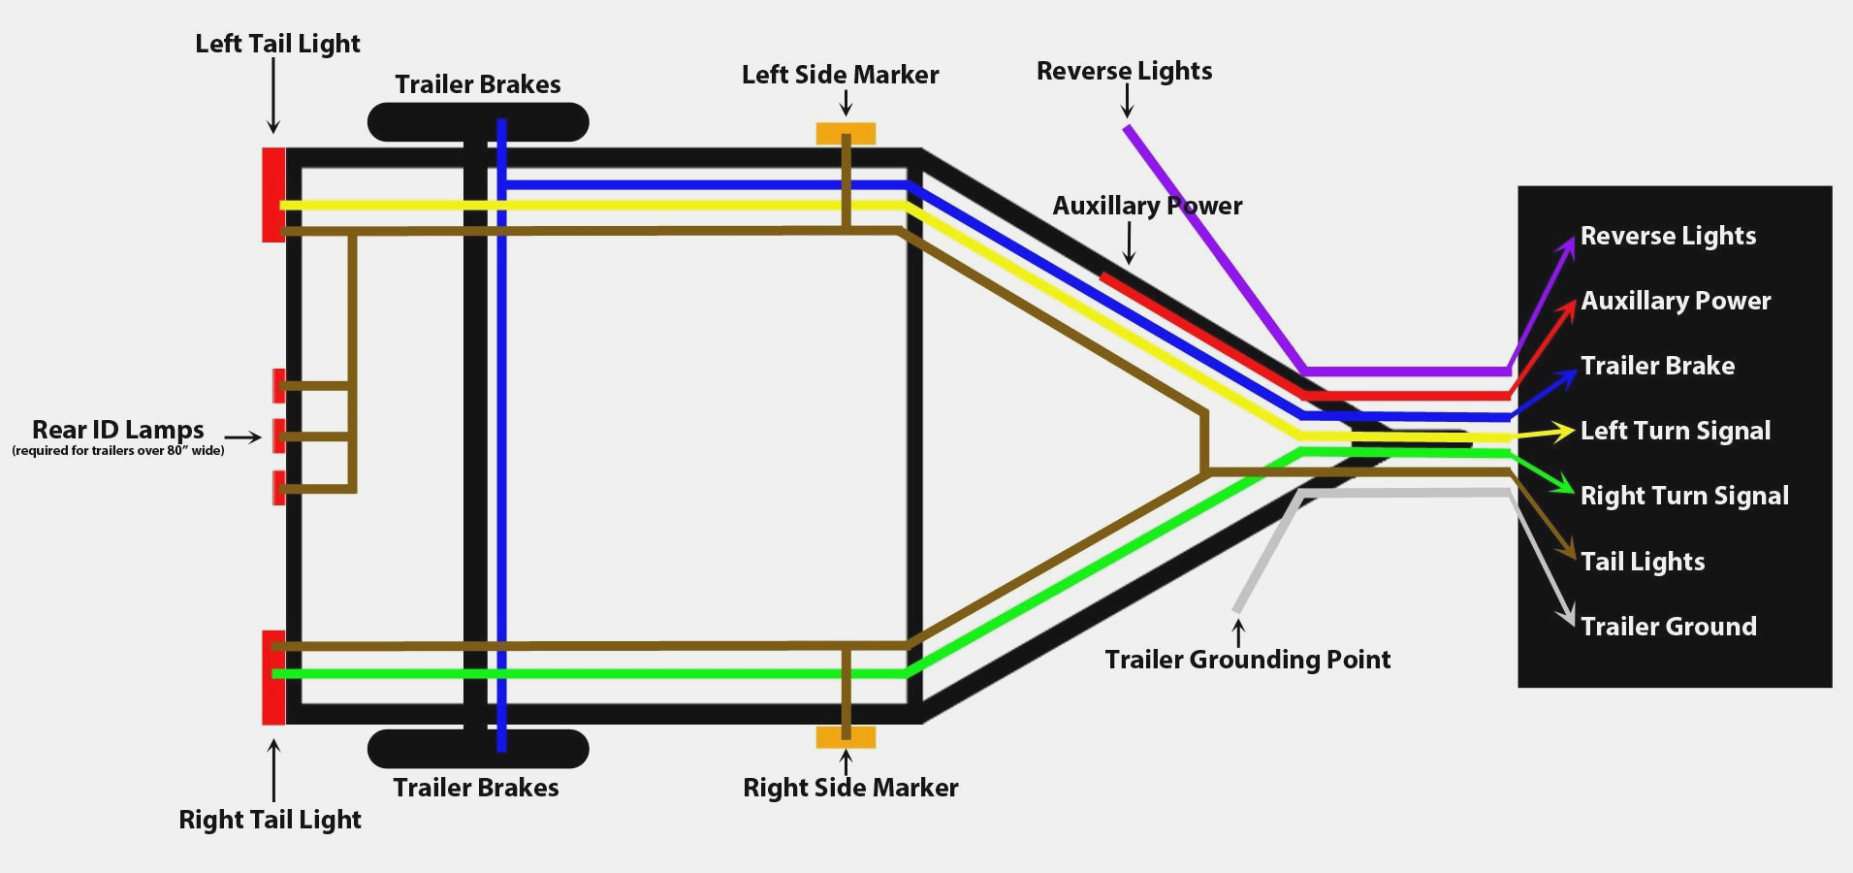 Shorelander Trailer Lights Wiring Diagram | Manual E-Books - Shorelander Trailer Lights Wiring Diagram